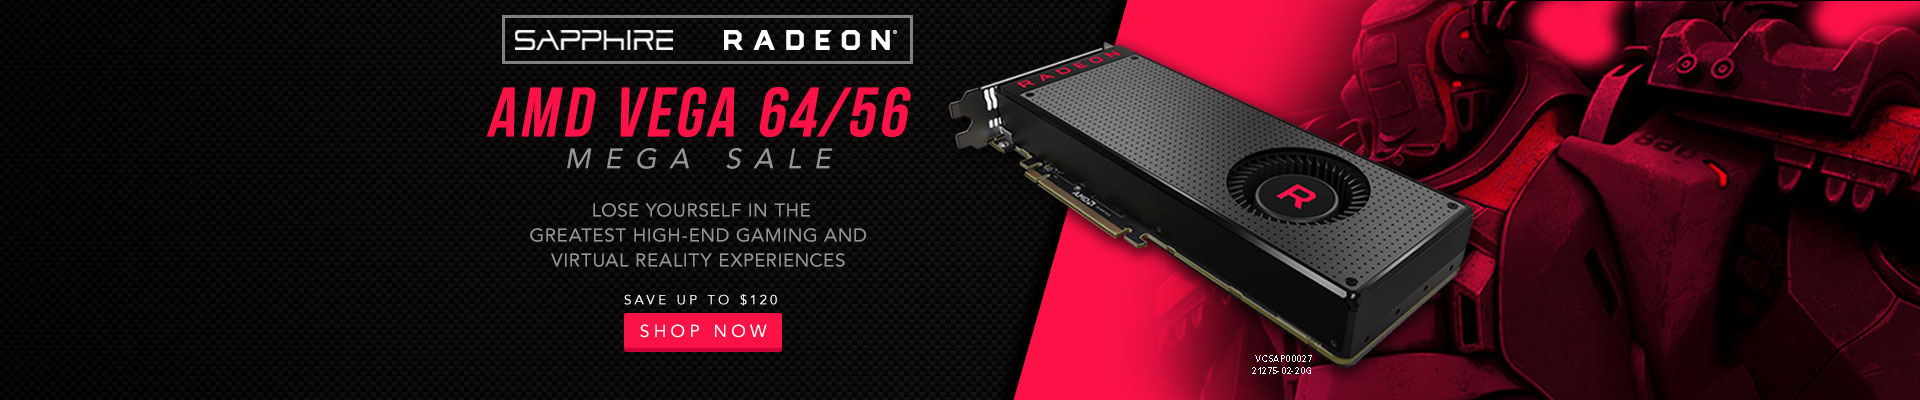 AMD VEGA 64/56 Mega Sales